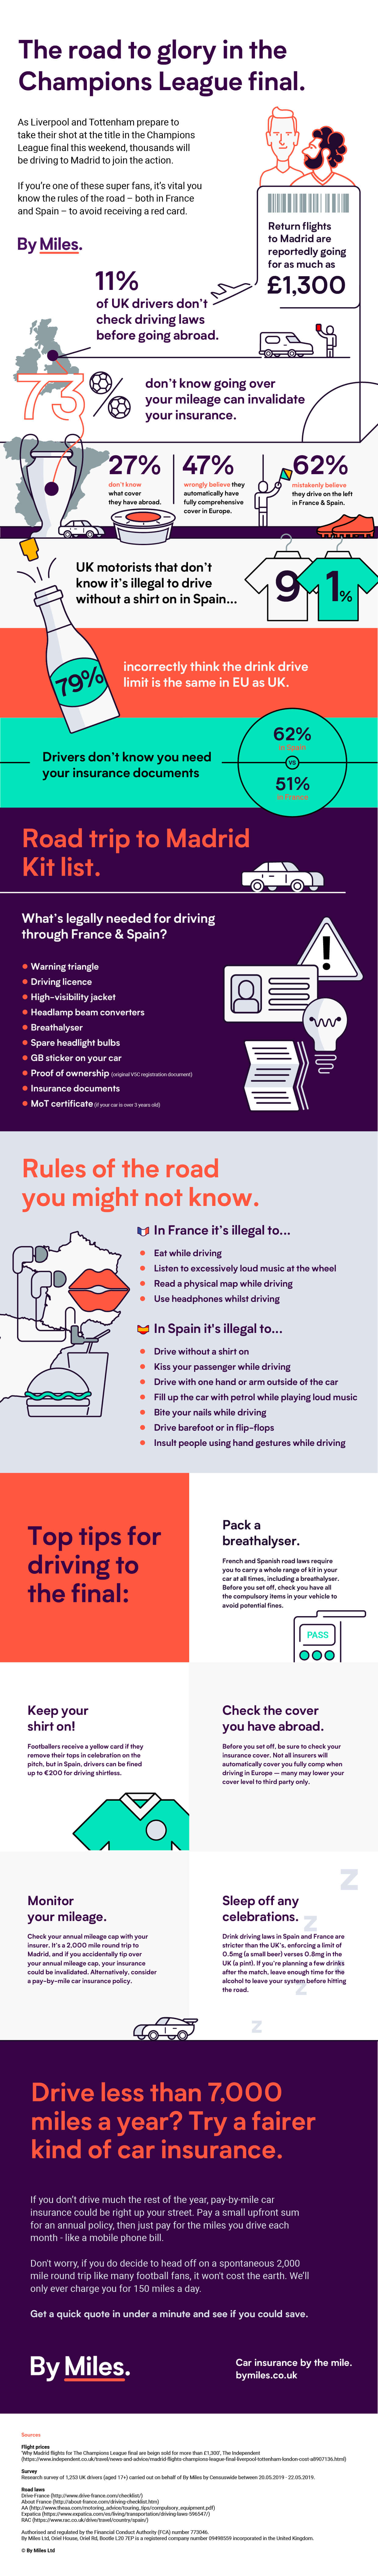 Driving Tips For A Road Trip To Champions League 2019 In Madrid - PDF Download